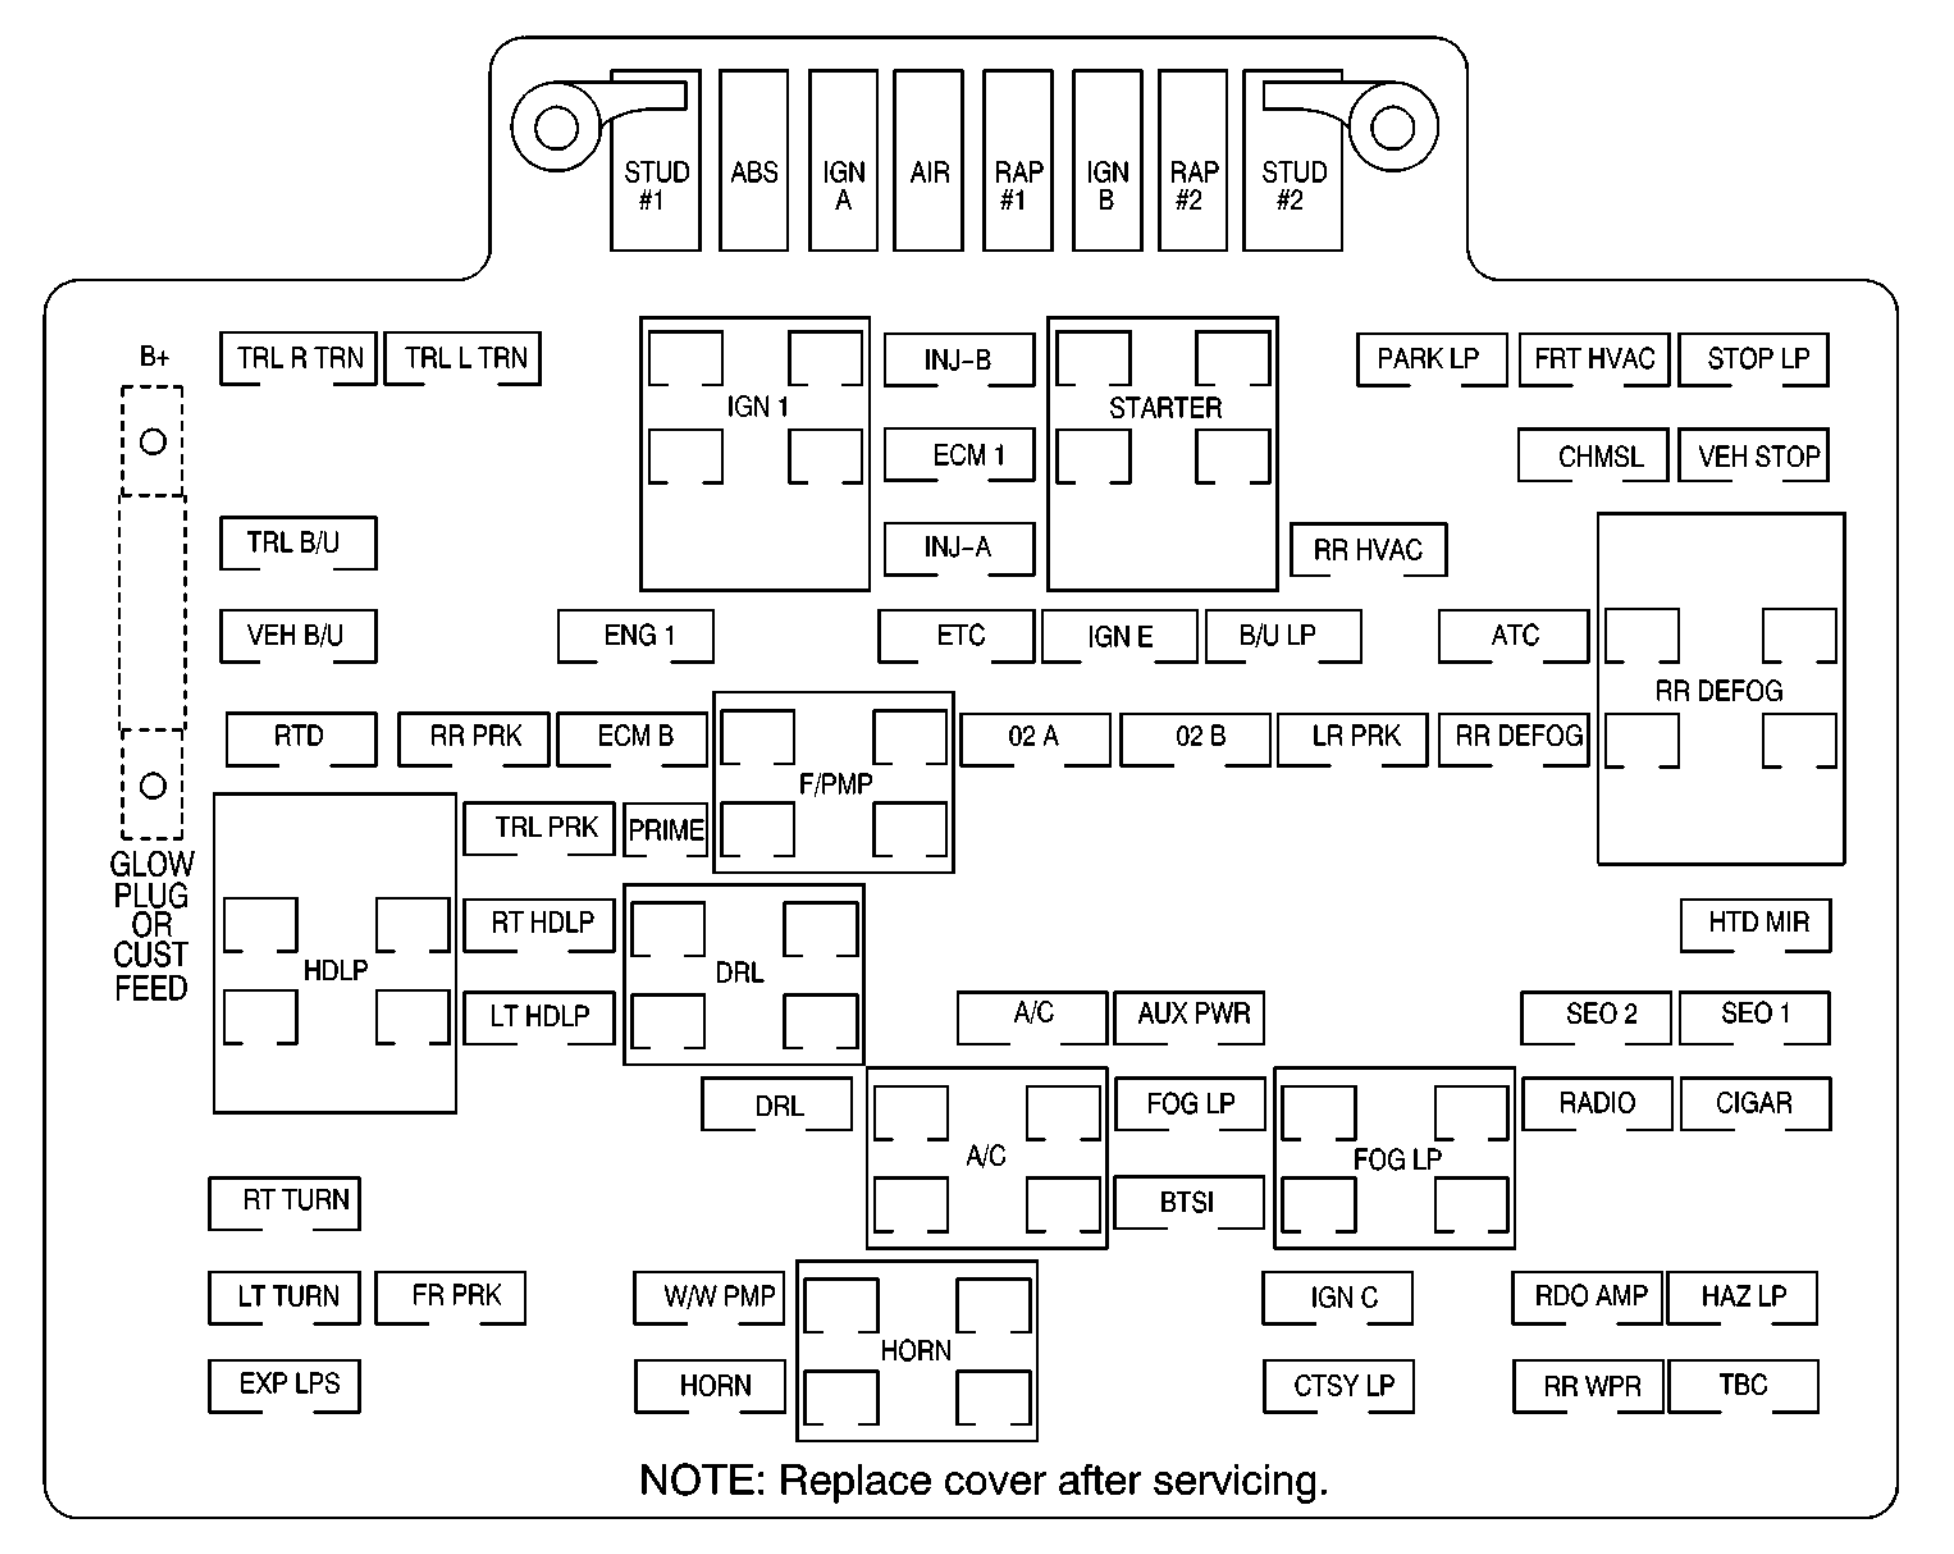 2002 Chevy Suburban Fuse Box - Answer Wiring Diagrams dry-application -  dry-application.unishare.it | 2000 Suburban Wiring Schematic |  | unishare.it